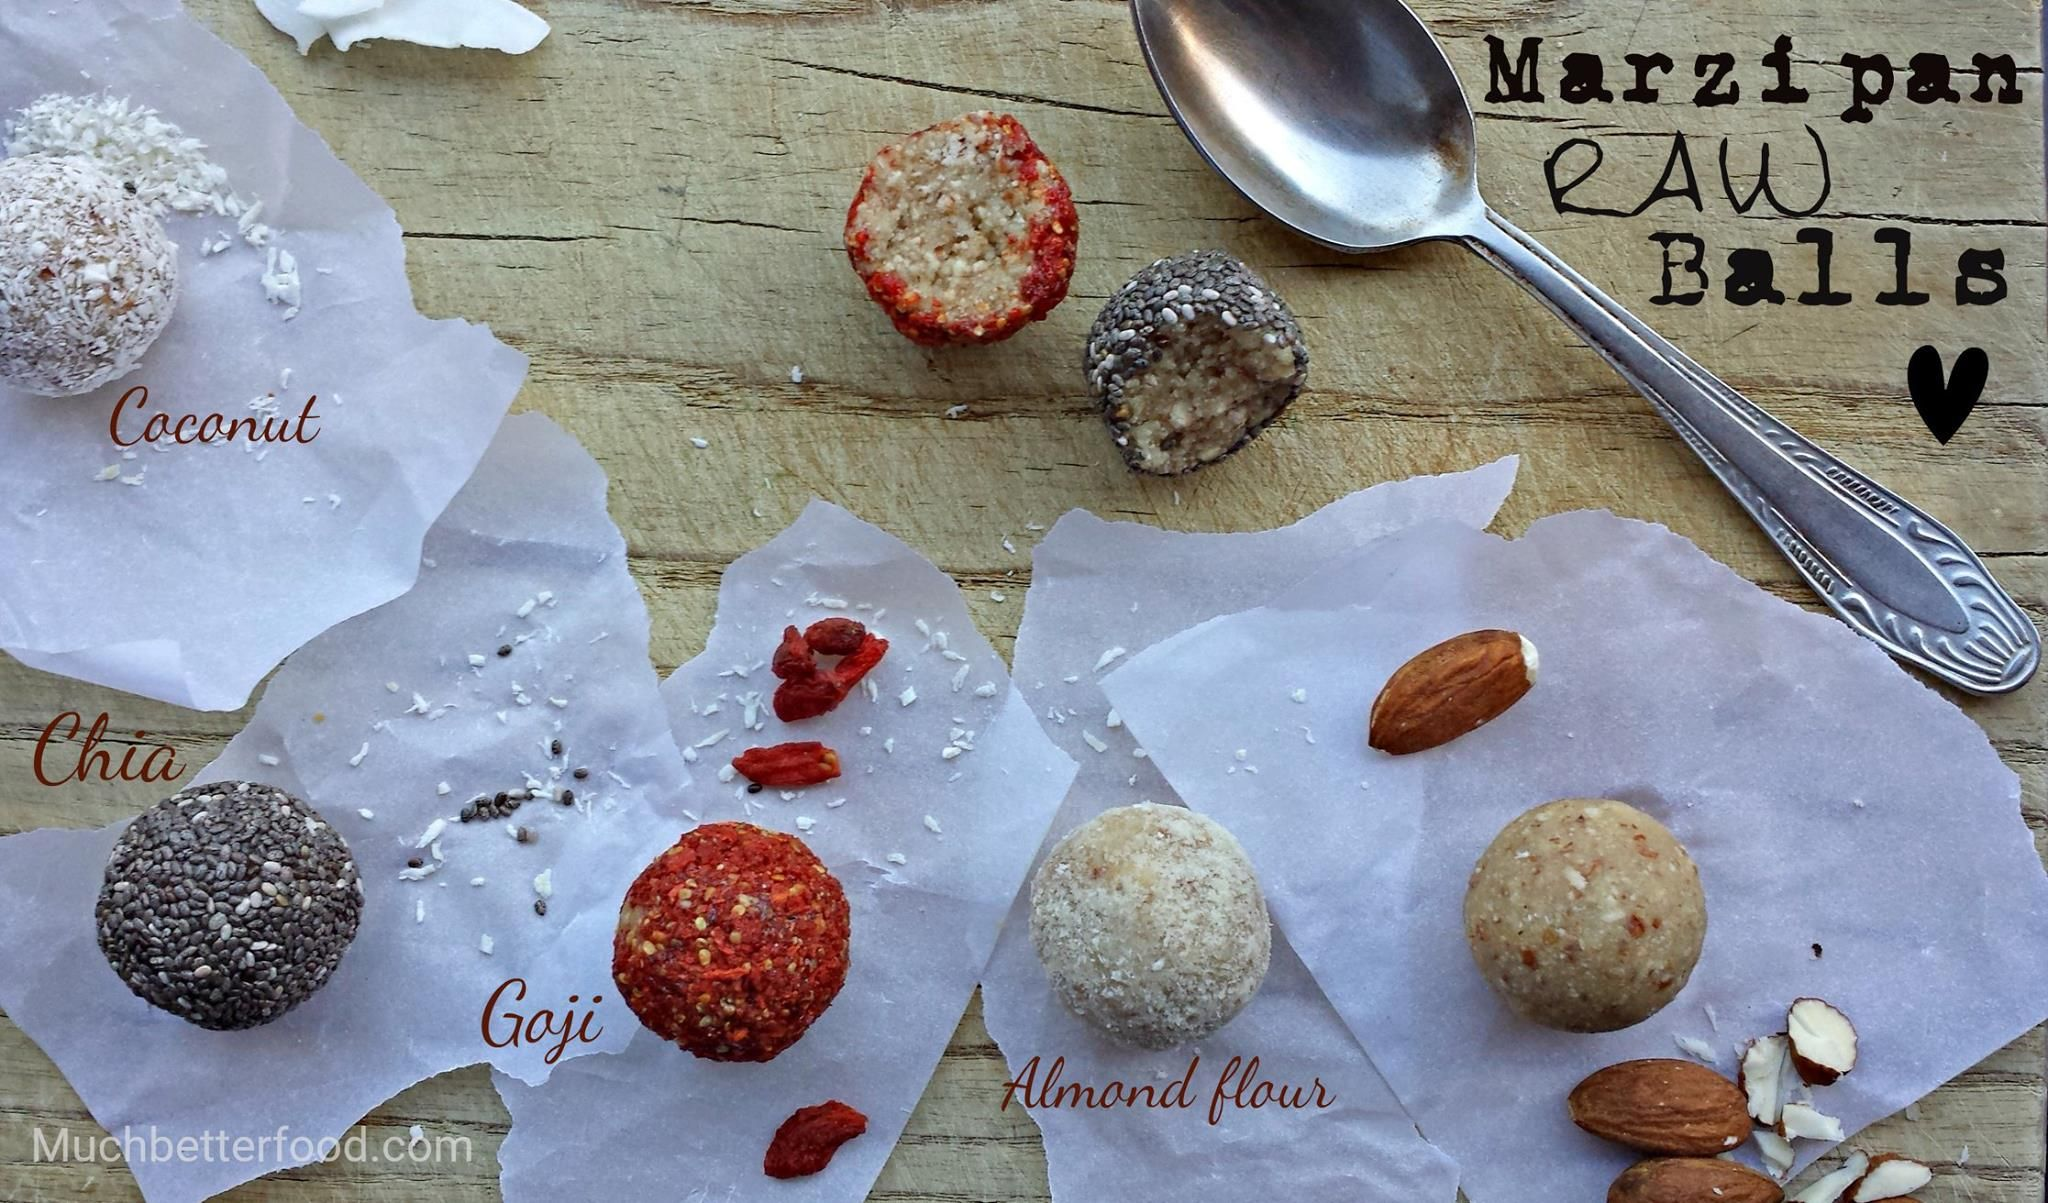 Are you lifelong marzipan lover or do you have leftover from making homemade almond milk🍼? I've for both of you an idea how to do quick and super tasty raw marzipan balls 🍡👌